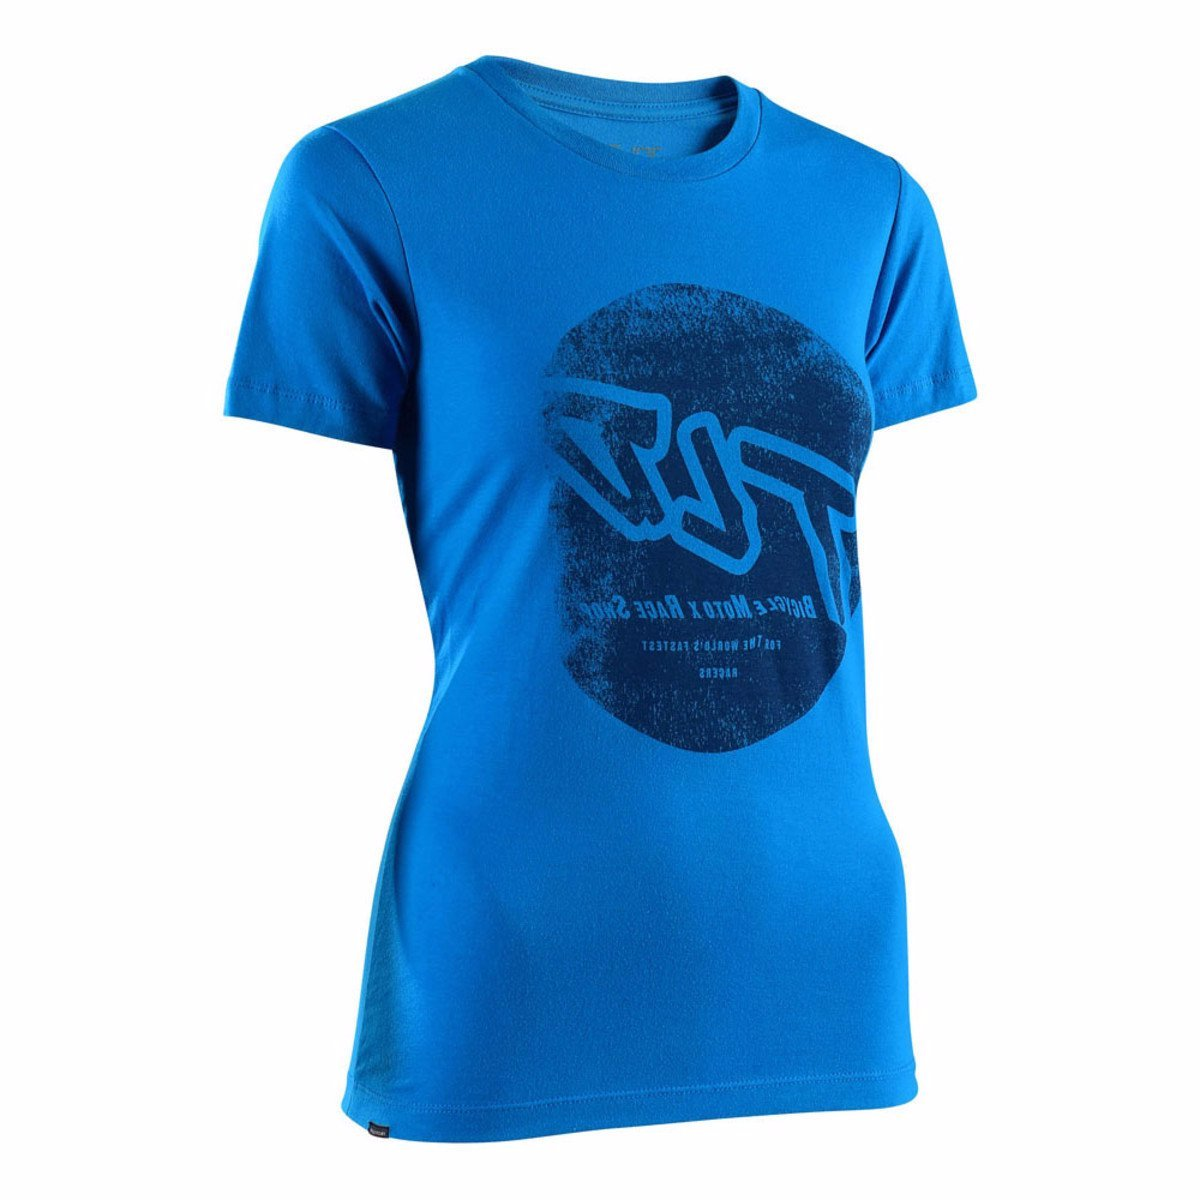 Stomp Womens Crew - Turquoise by Troy Lee Designs